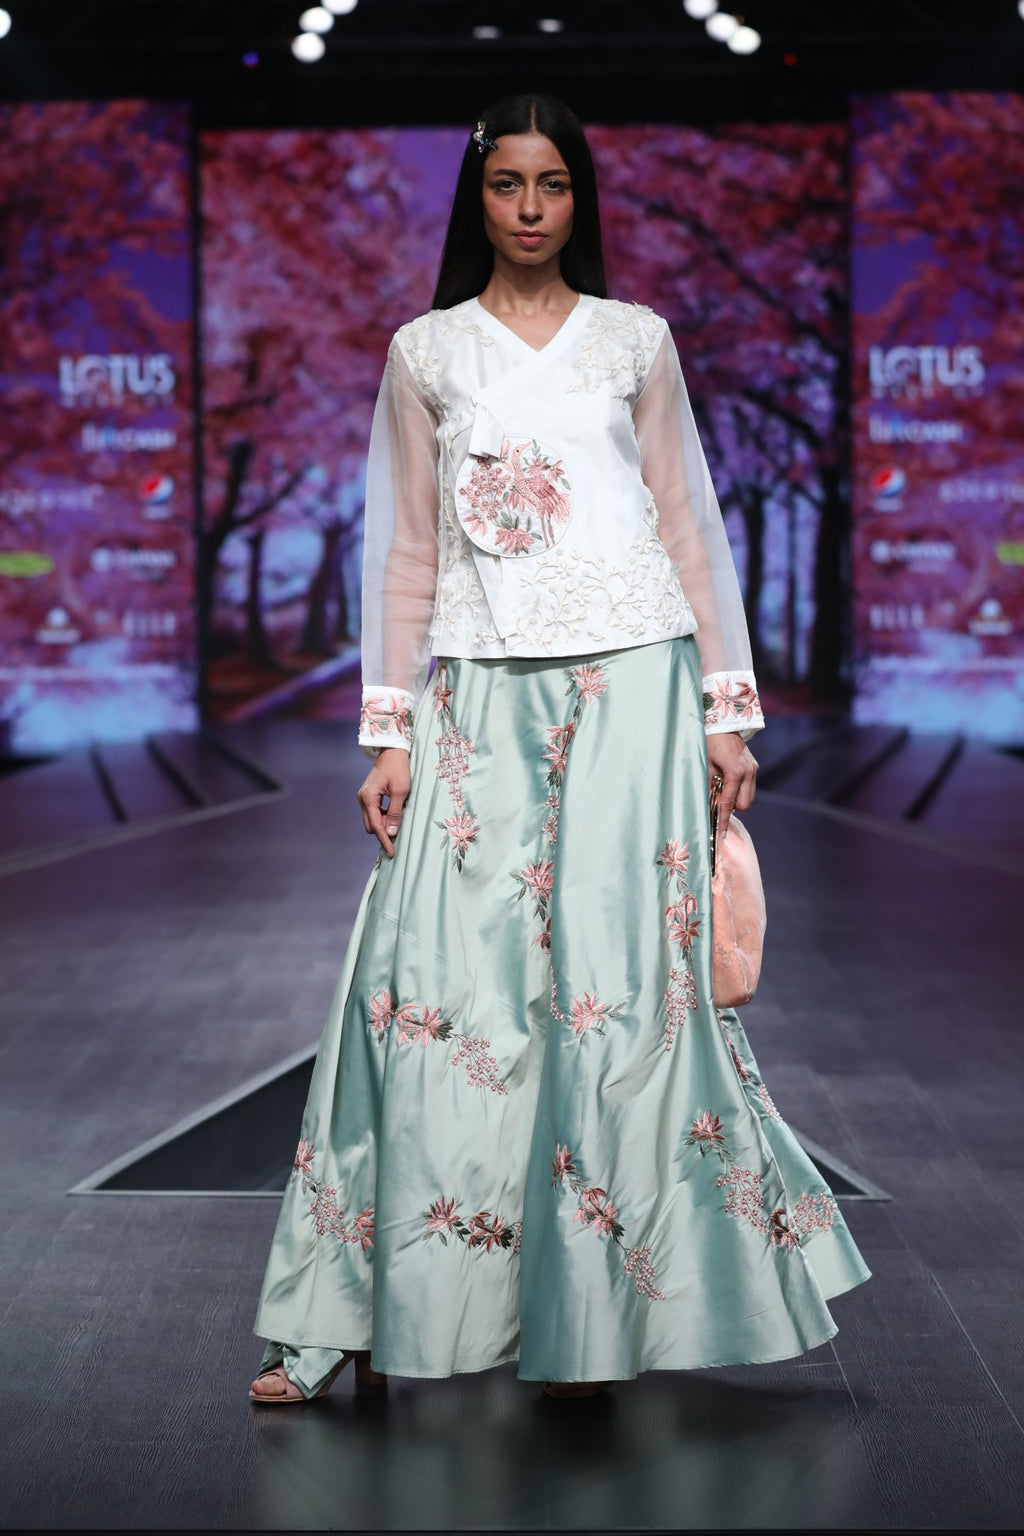 Green Floral Embroidered Tafeta Skirt